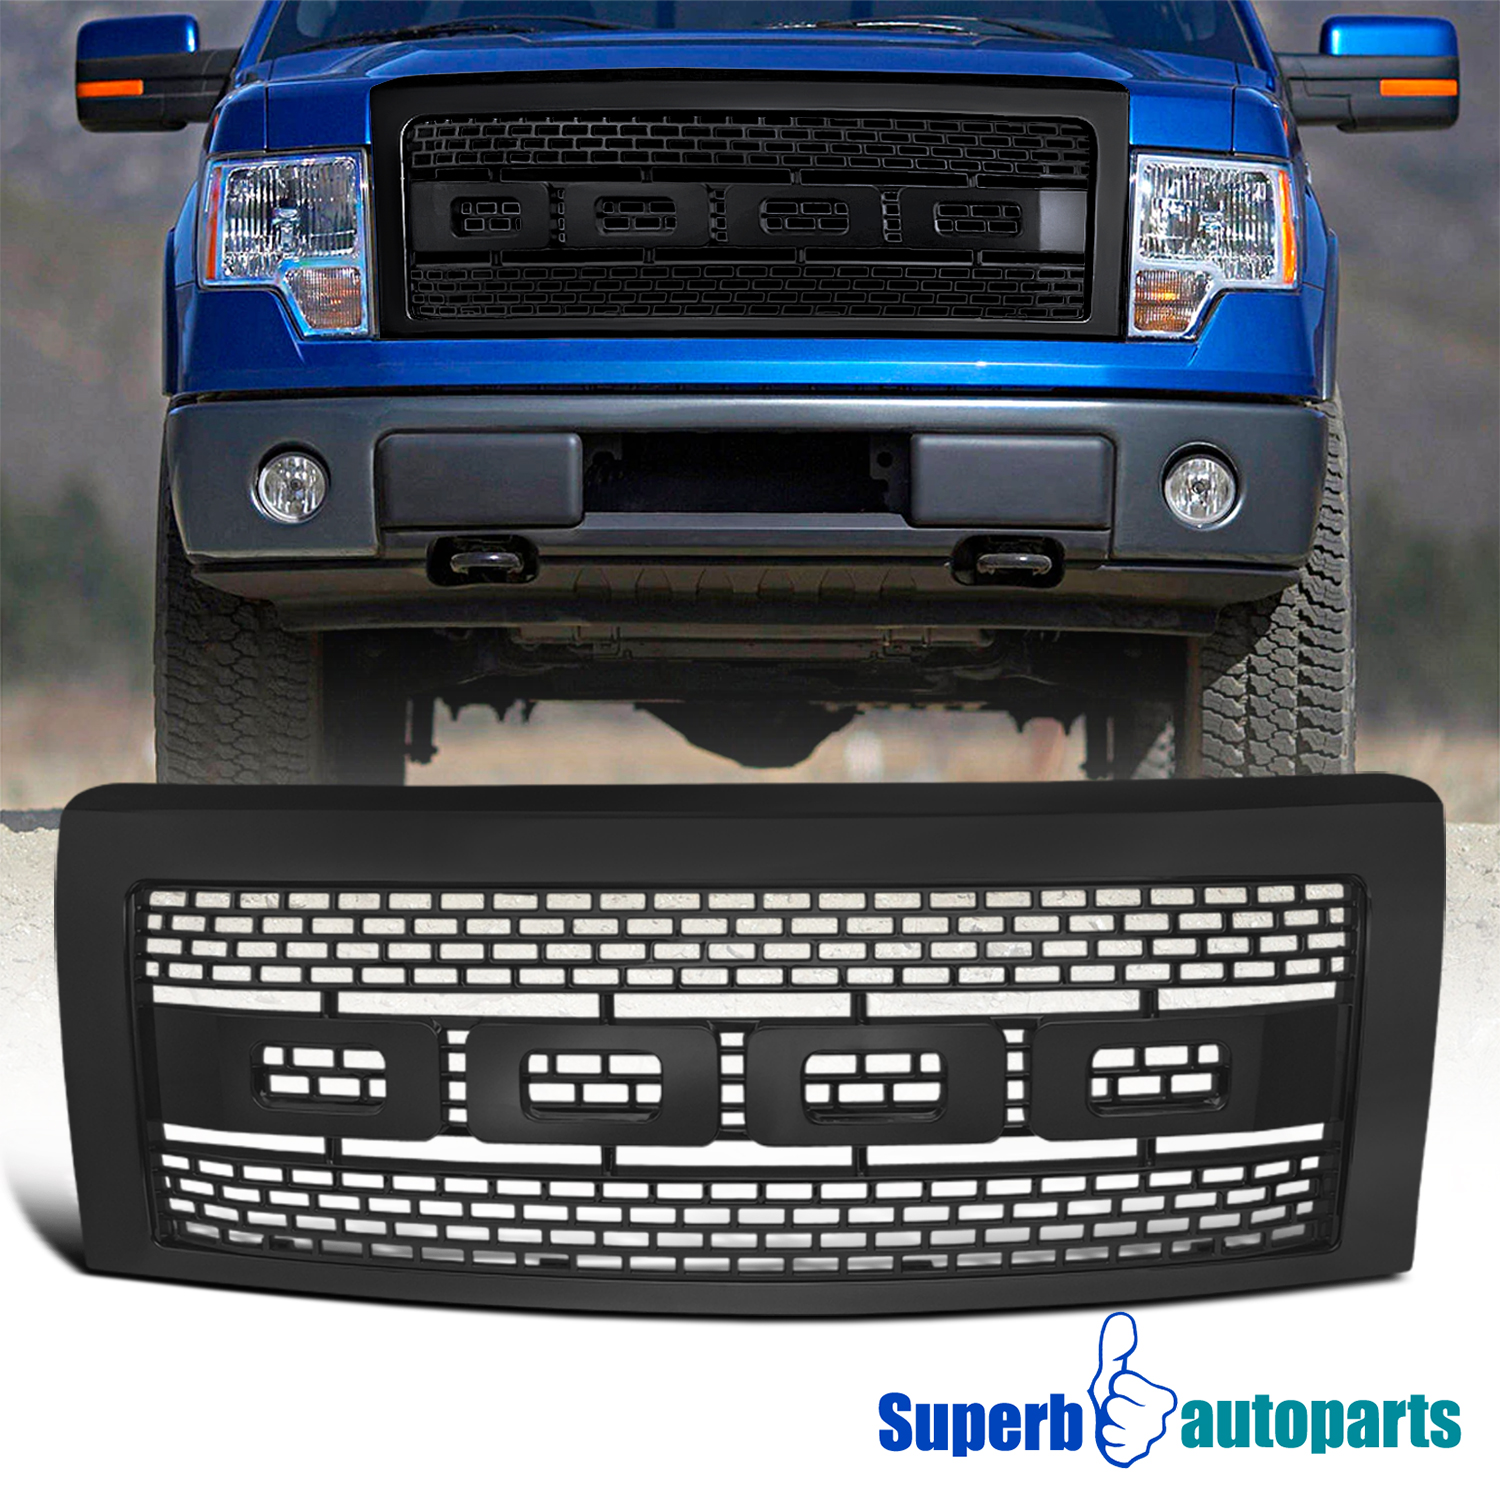 2012 Ford F150 Front Bumper